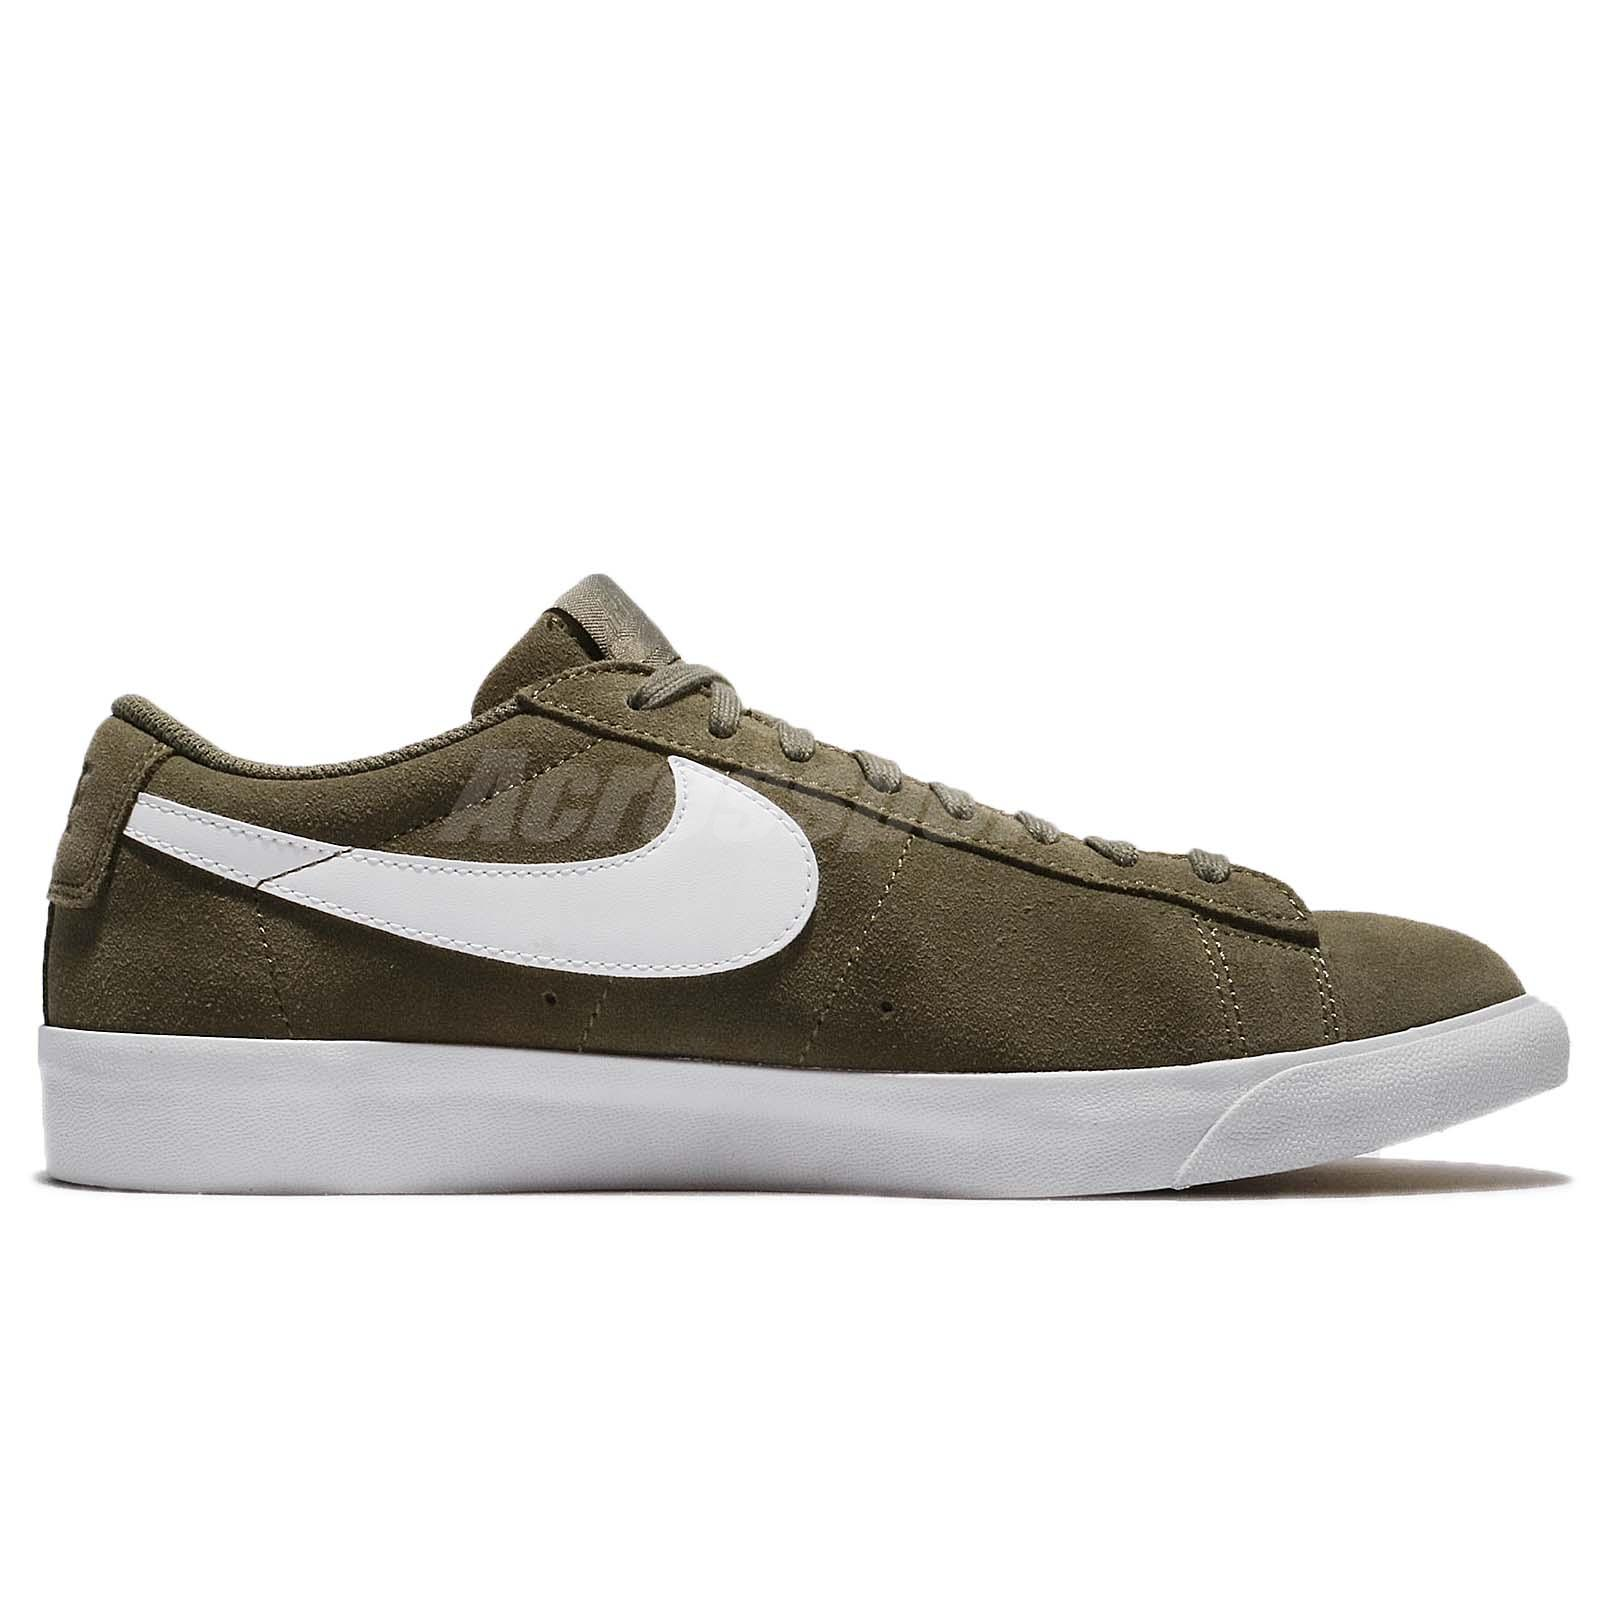 Nike Blazer Low Suede Medium Olive Green Men Shoes Sneakers Trainers ... 05e35d685